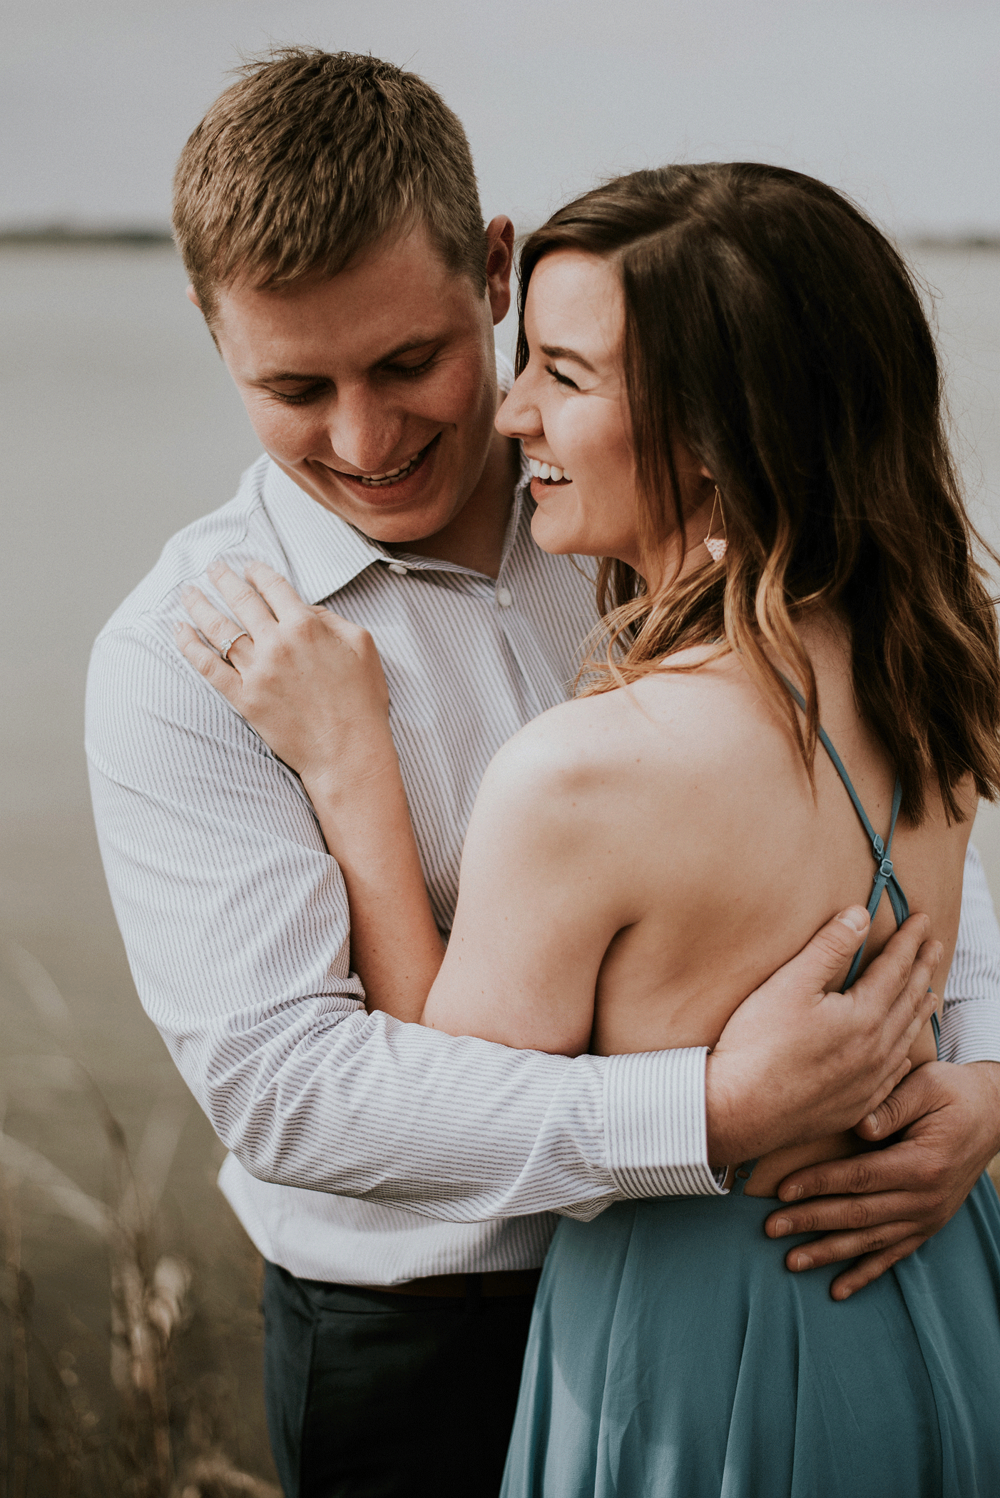 kaylie-sirek-nebraska-wedding-engagement-photographer-photography-grand-island-kearney-hastings-lincoln-08.png